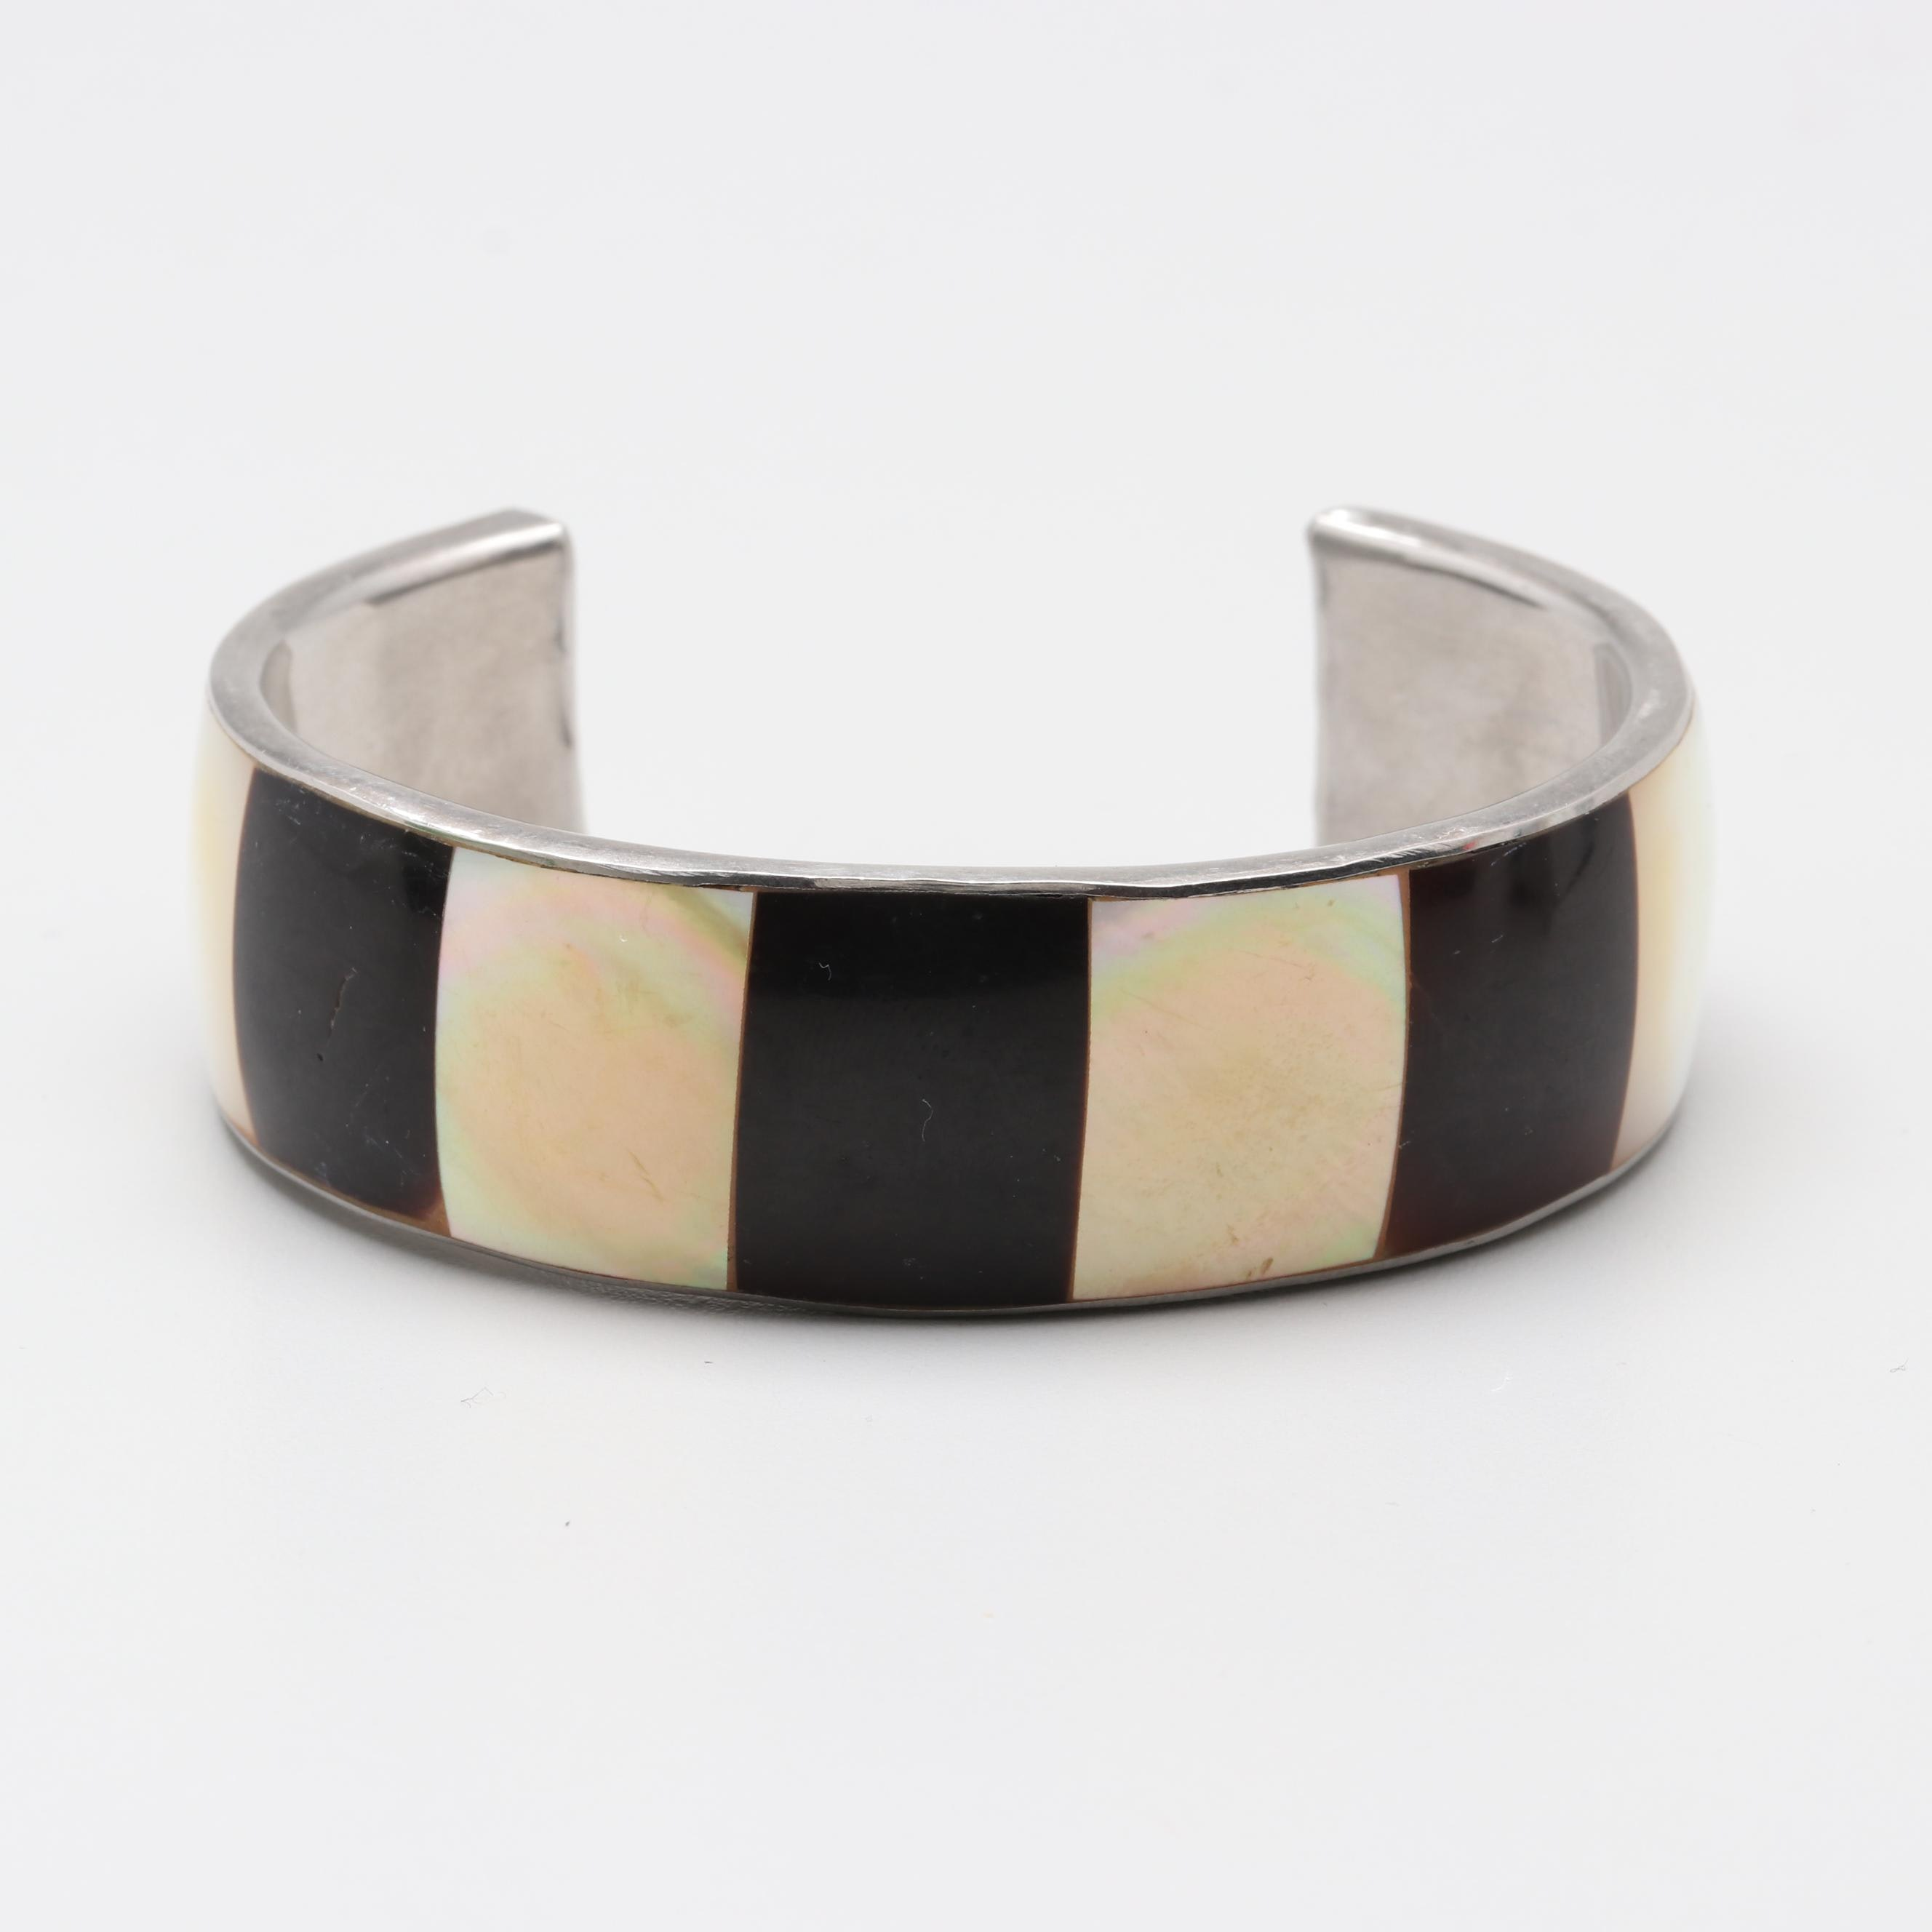 Silver Tone Mother of Pearl and Shell Cuff Bracelet